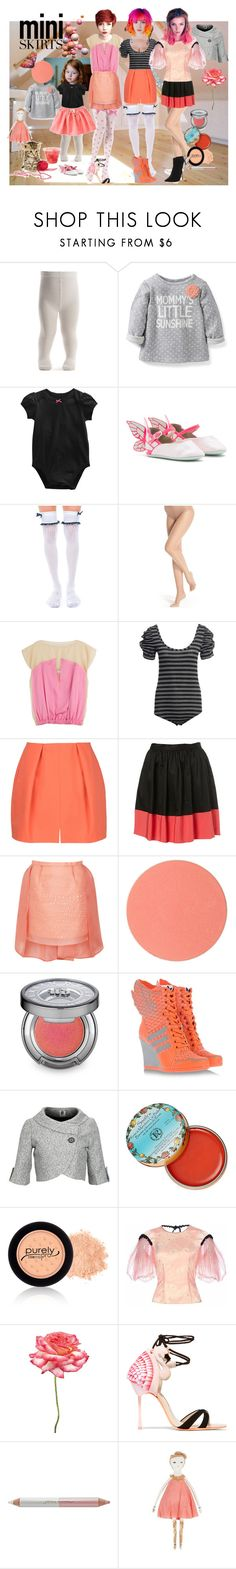 """Just me and my Mini"" by verysmallgoddess ❤ liked on Polyvore featuring Carter's, Gymboree, Sophia Webster, Leg Avenue, Donna Karan, Vionnet, Reiss, Carven, Emilio De La Morena and Chantecaille"